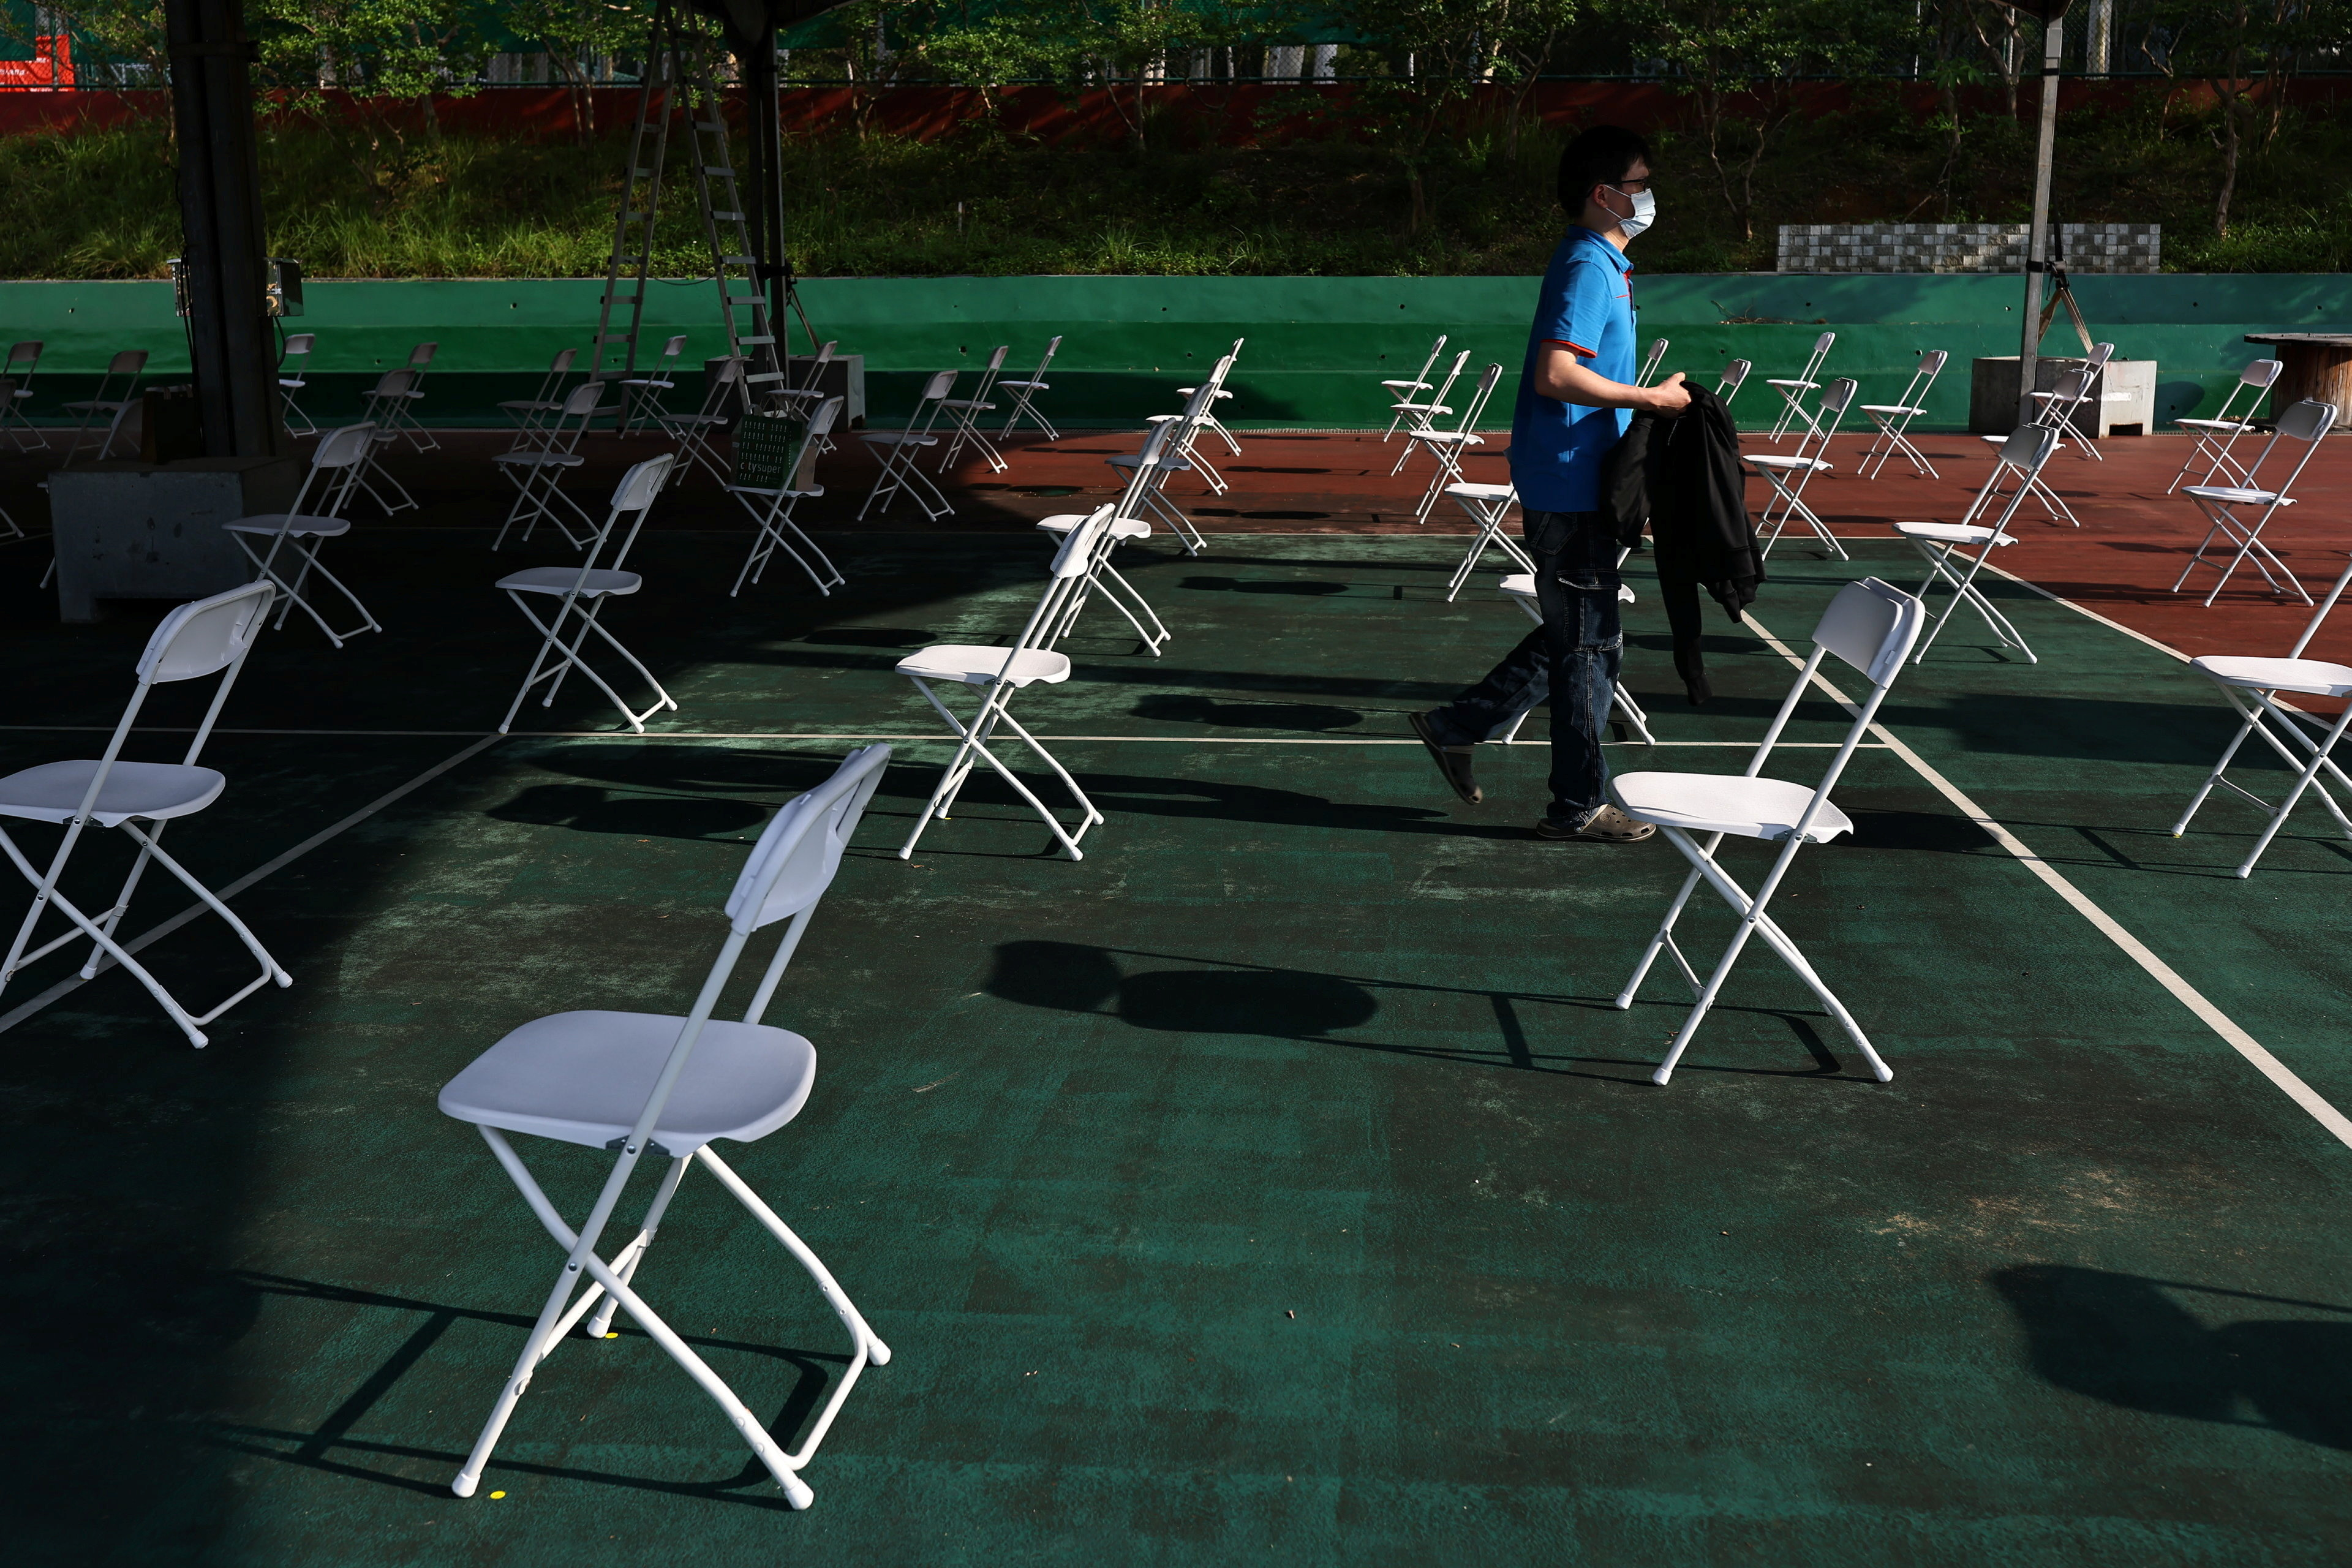 A man wearing a protective face masks leaves after setting up chairs at a tennis court, which is being converted into a makeshift vaccination site following the coronavirus disease (COVID-19) outbreak, in Hsinchu, Taiwan June 8, 2021. REUTERS/Ann Wang - RC28WN96UCFL